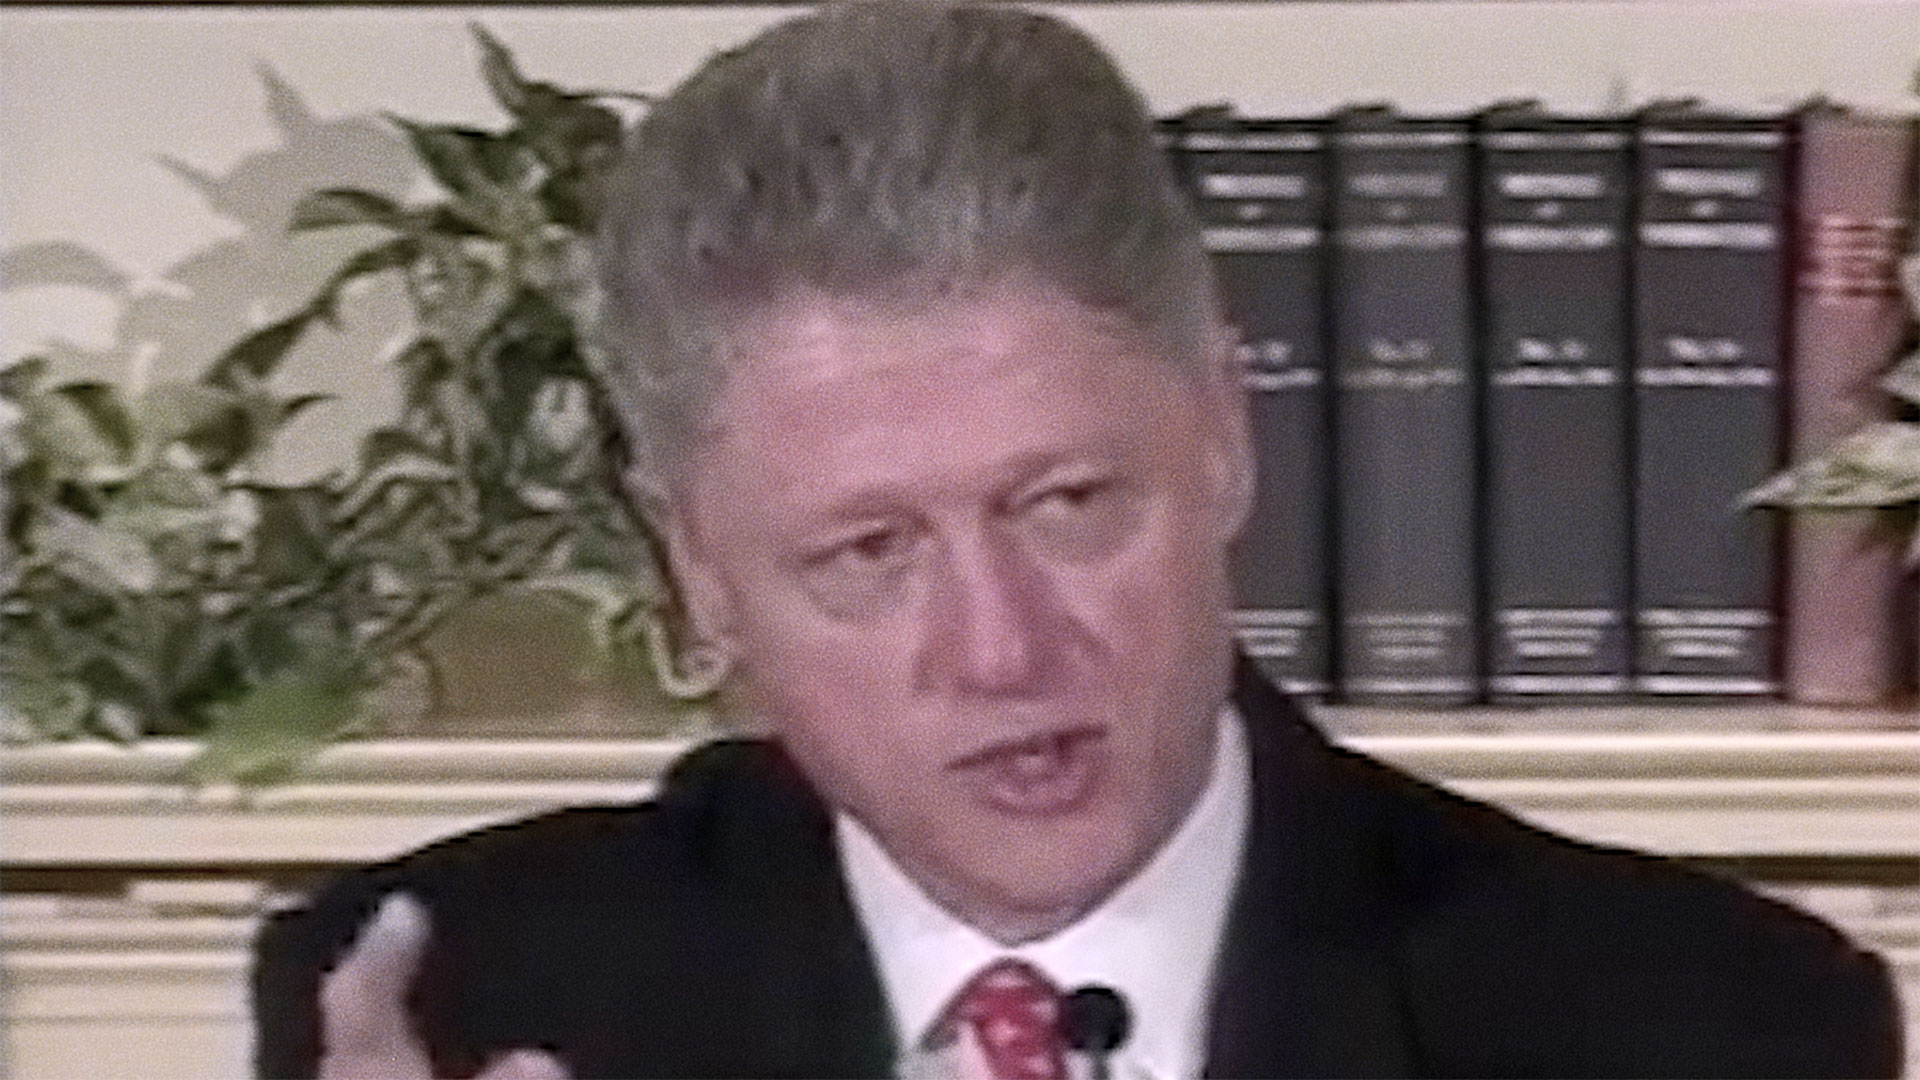 Partnership with Bill Clinton